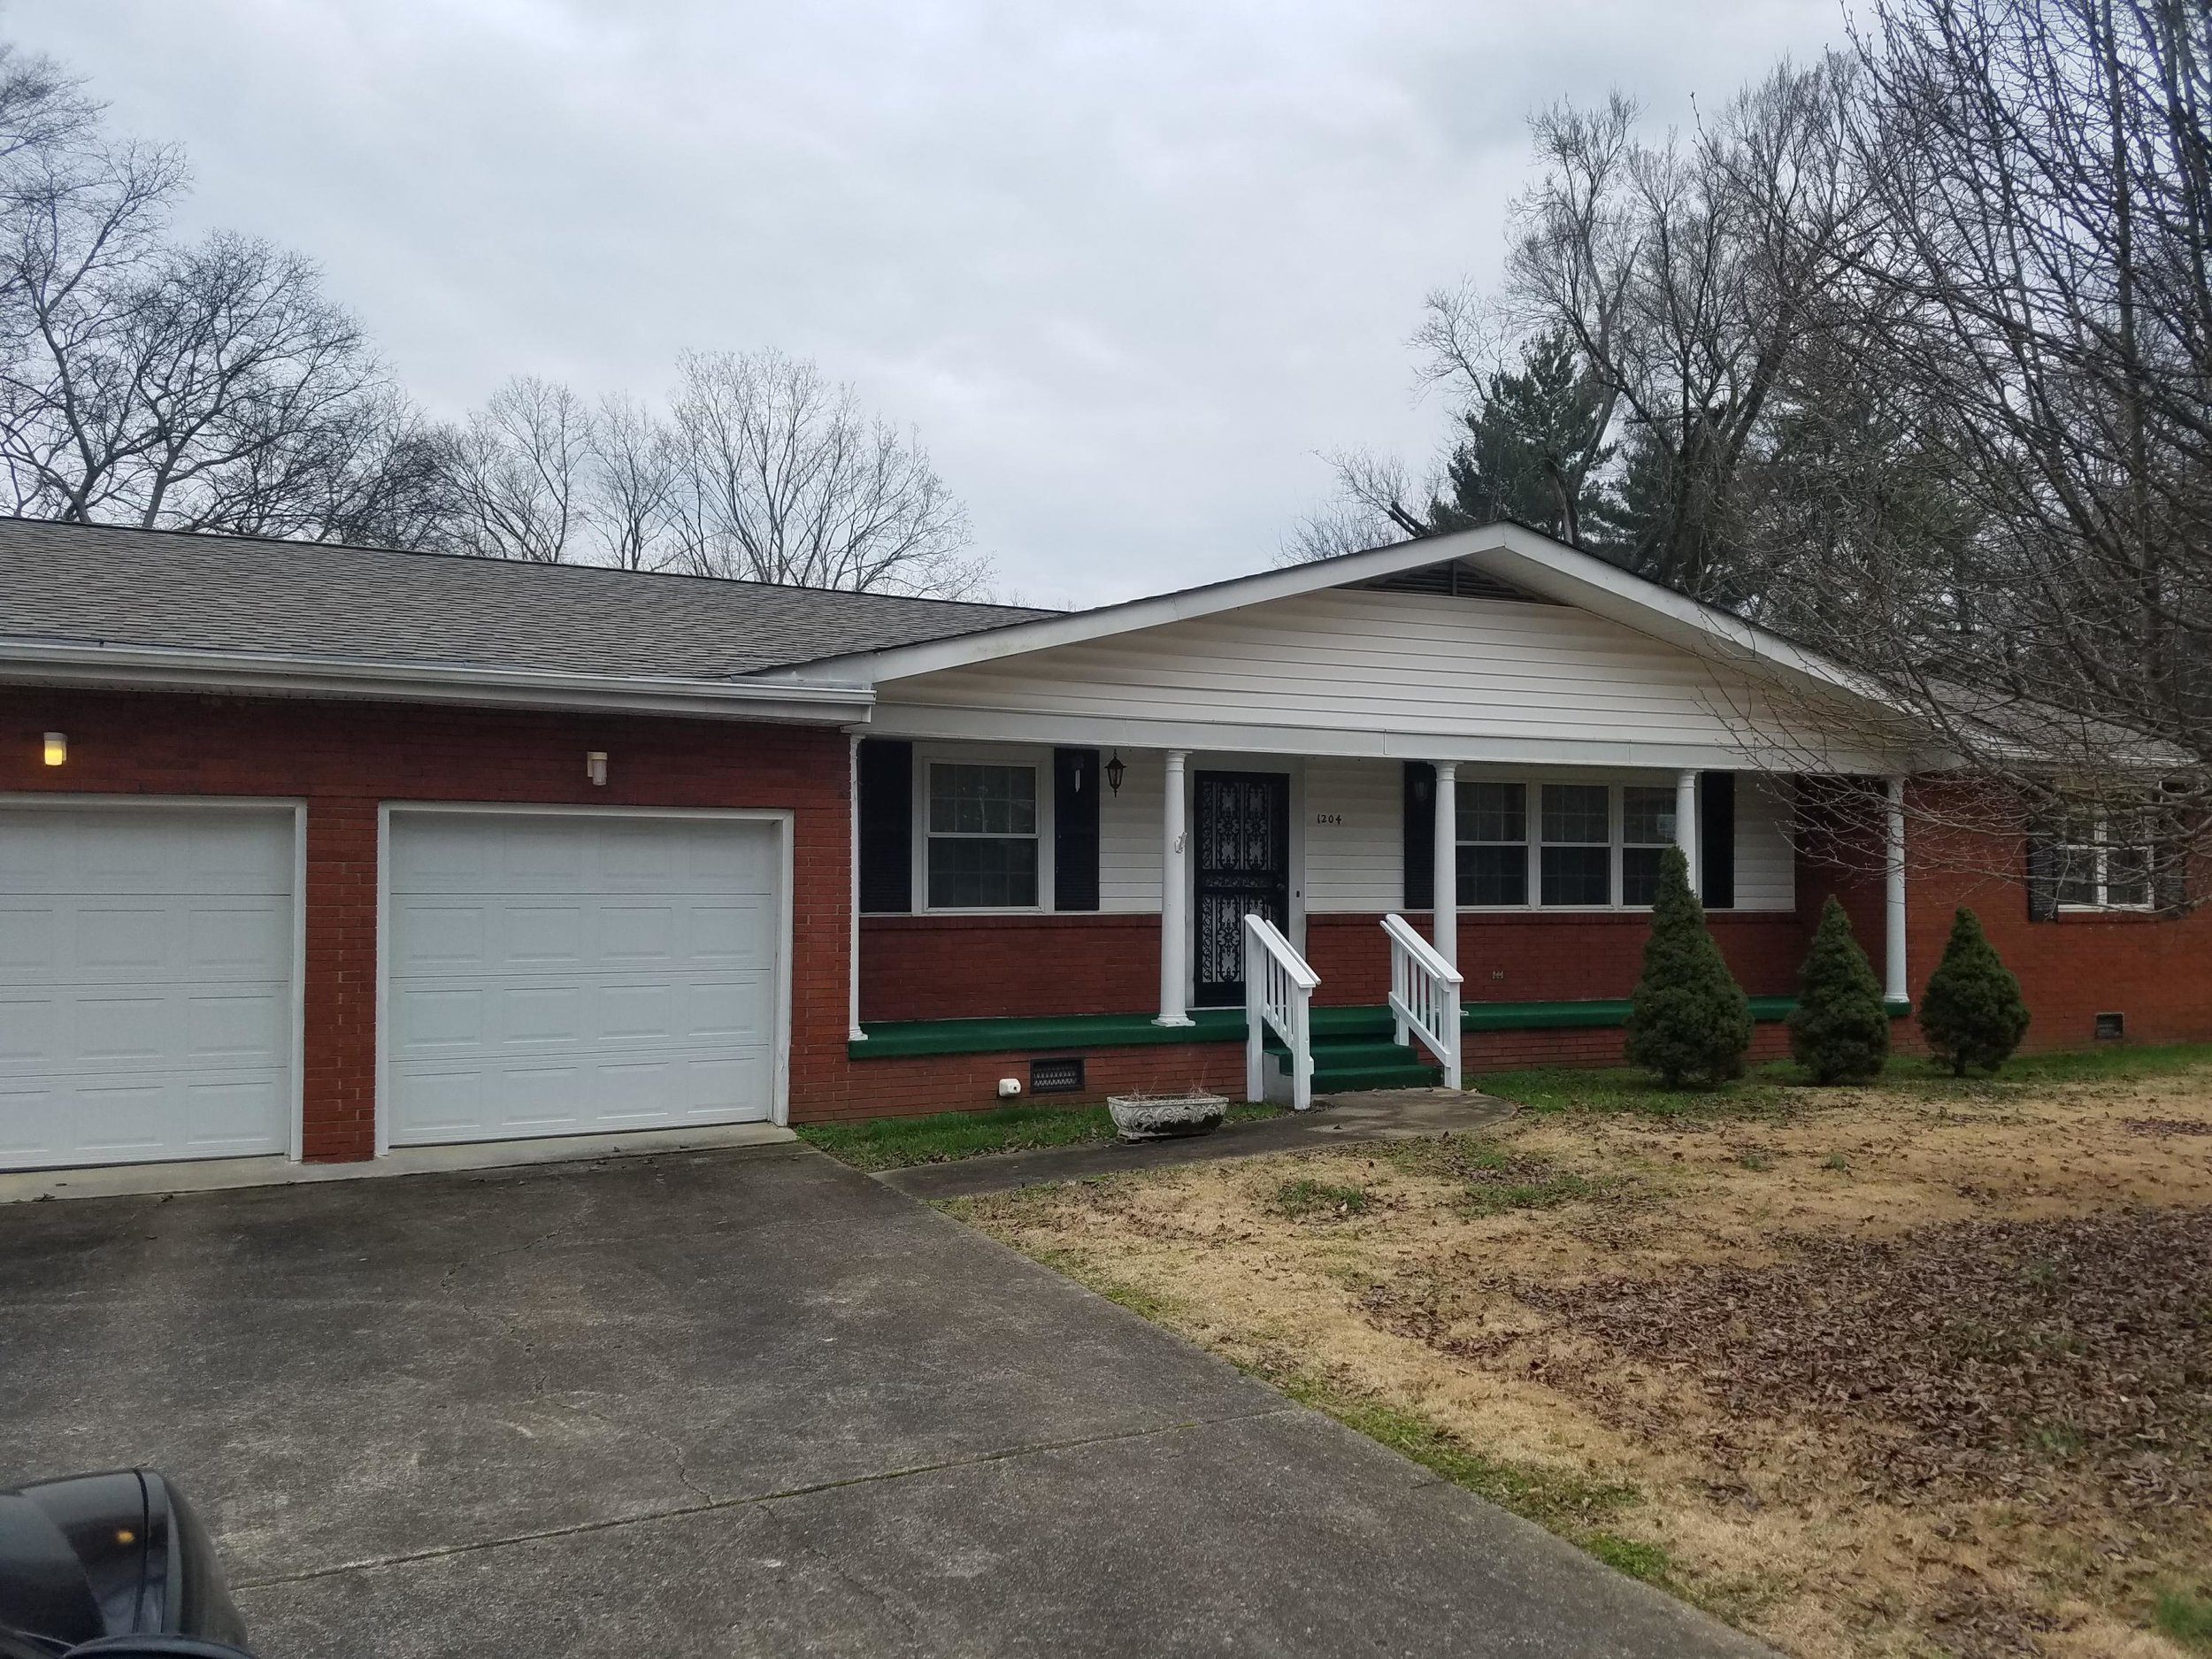 SOLD in 3 DAYS!! 1204 Shallowford Rd. Sold for $118,500